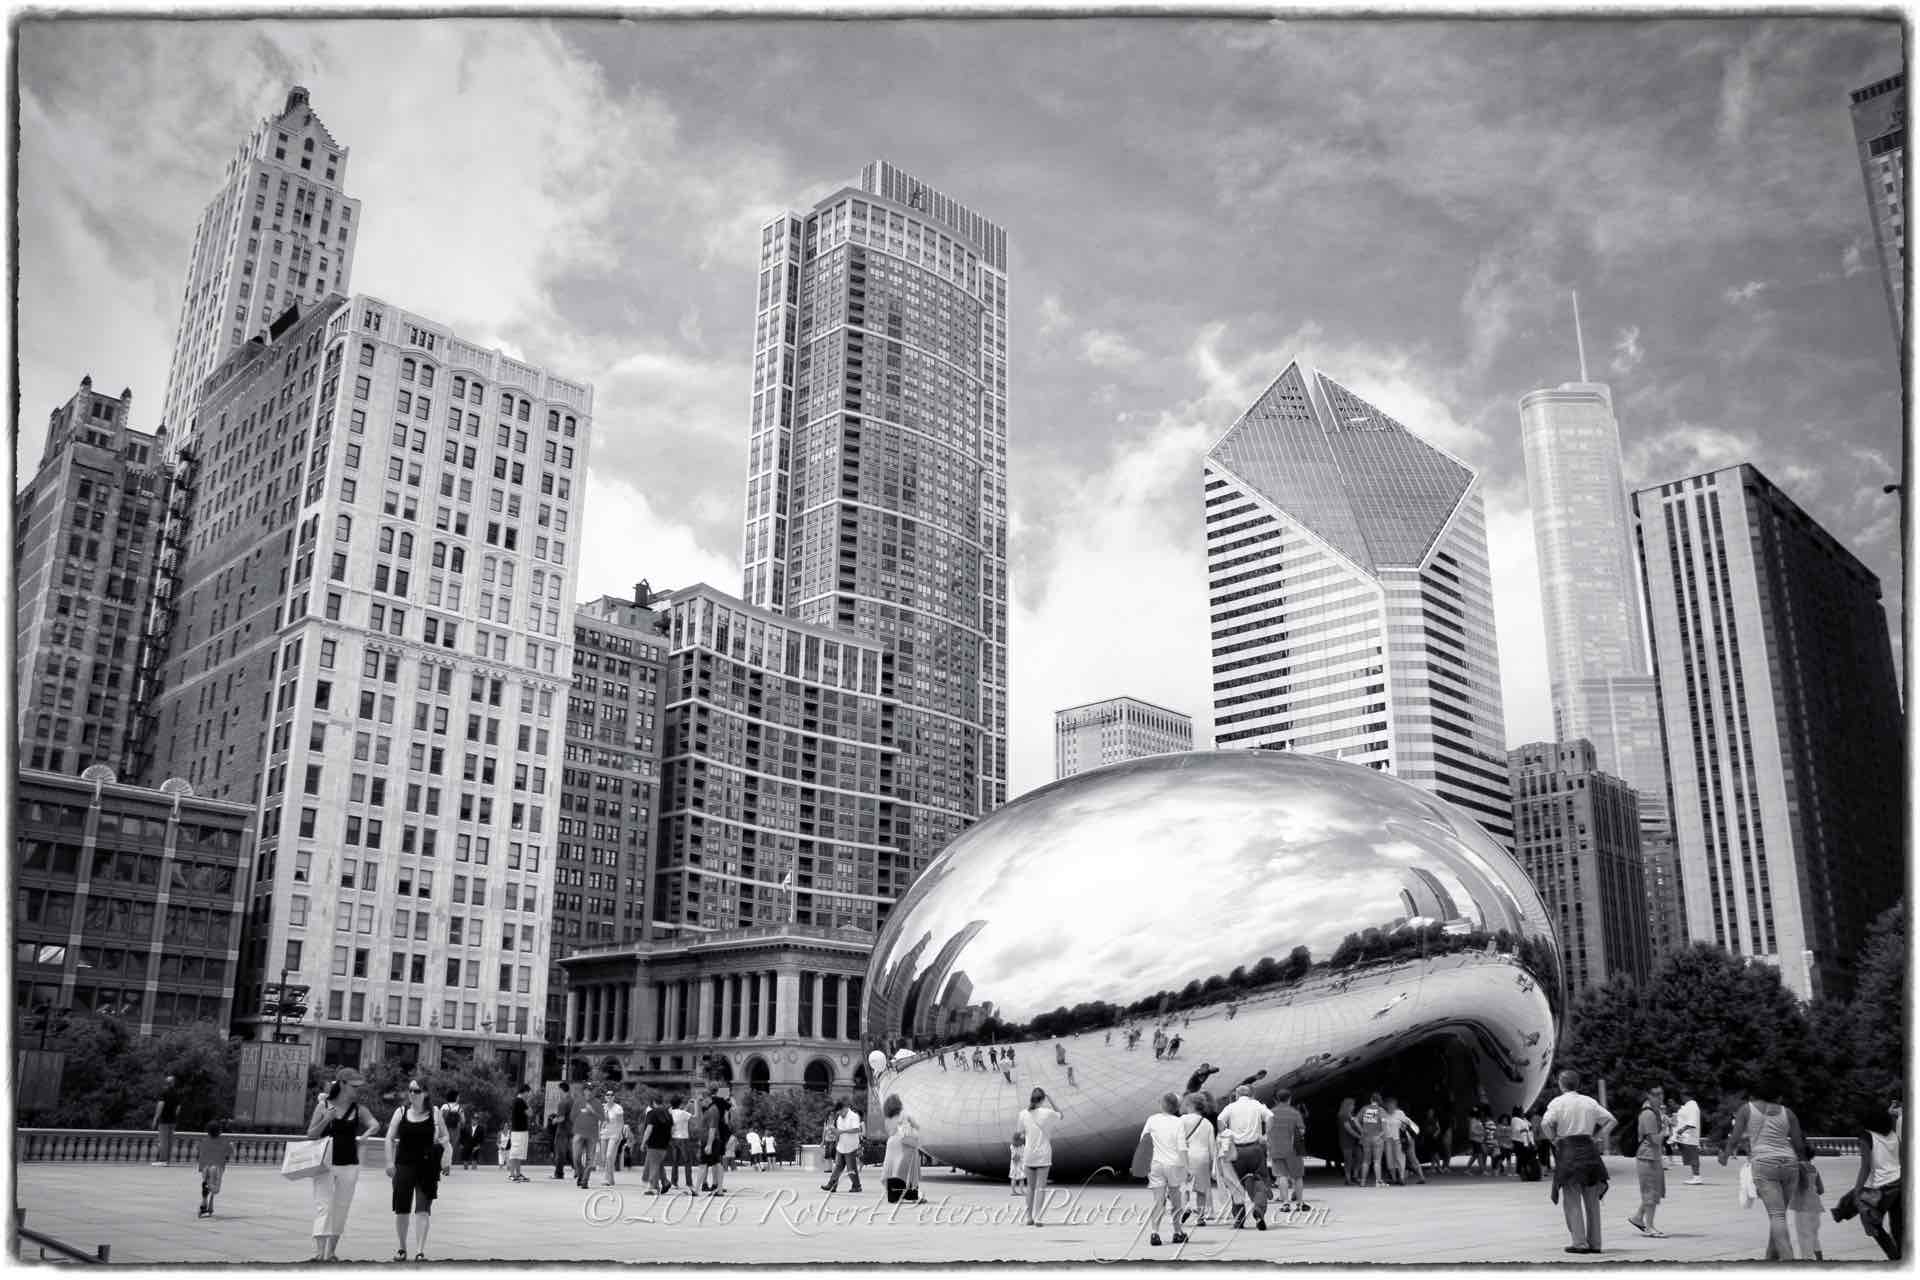 chicago illinois cloud gate bean at&t plaza millennium park sights black white macphun tonality robert peterson photography